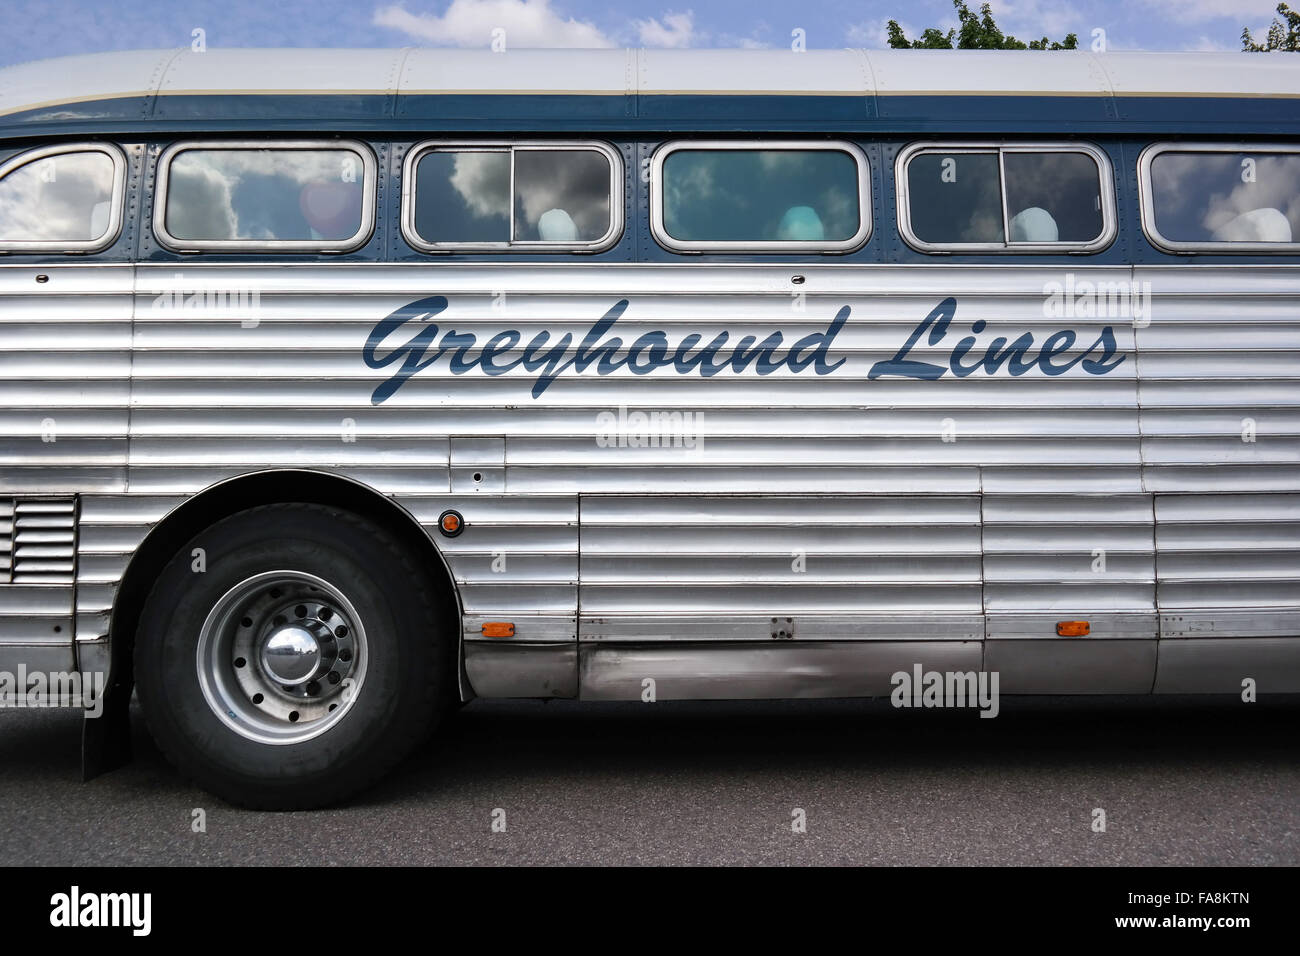 Side detail of an oldtimer Bus of Greyhound Lines. - Stock Image